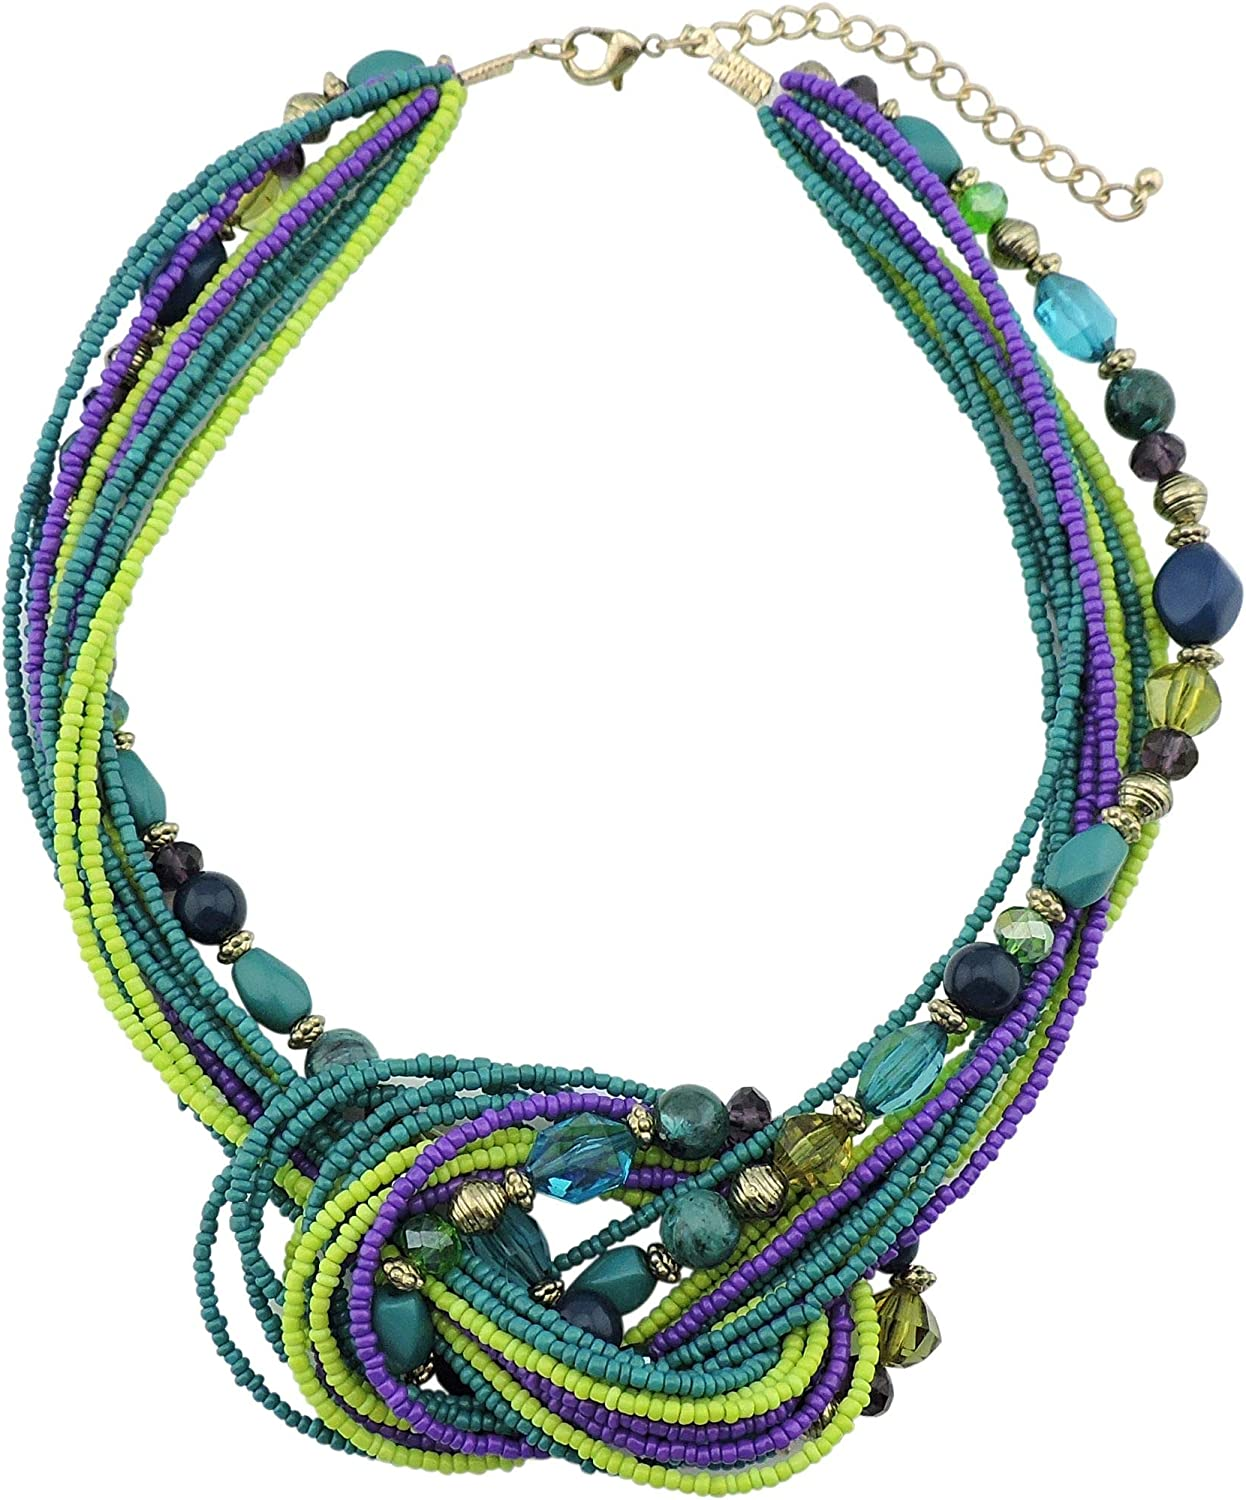 Firstmeet FIRSTMET Seed Beads Antique Gold Multi-Layer Statement Collar Knot Necklace